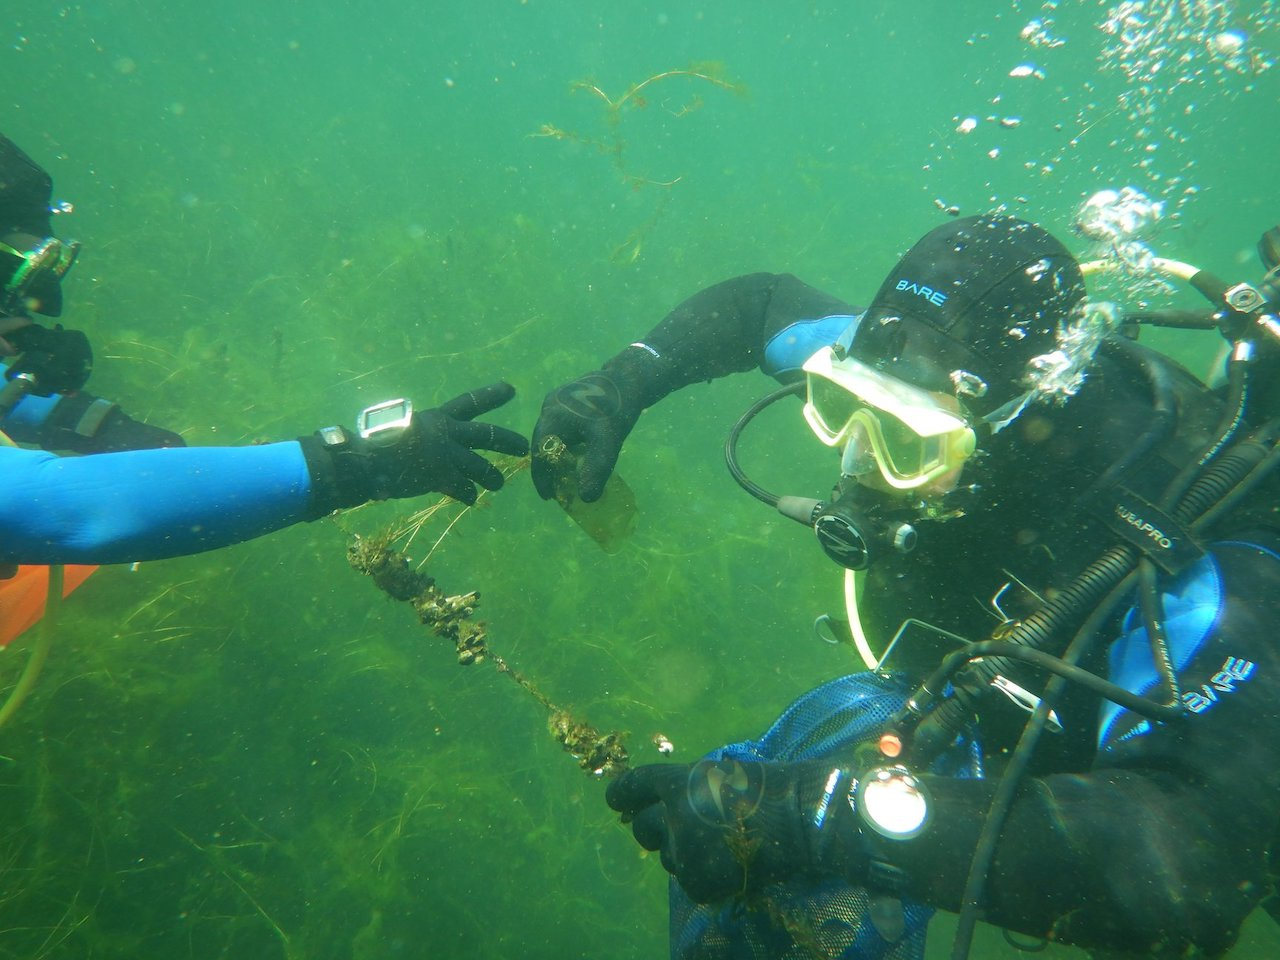 GALLERY: Volunteers dive to cleanup the marina in Watkins Glen as summer ends